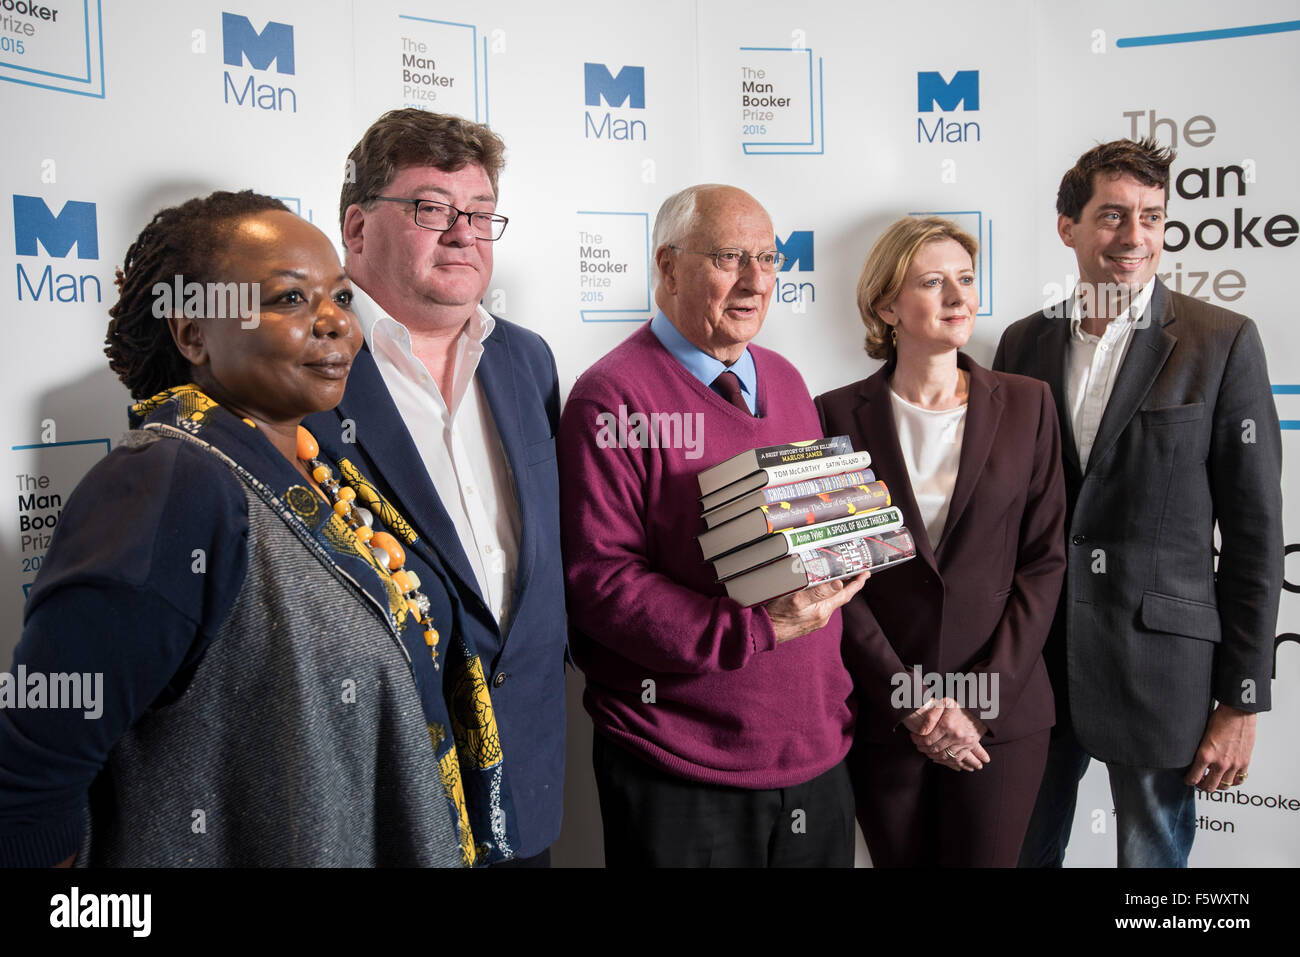 booker prize short list announcement and photocall with the judges